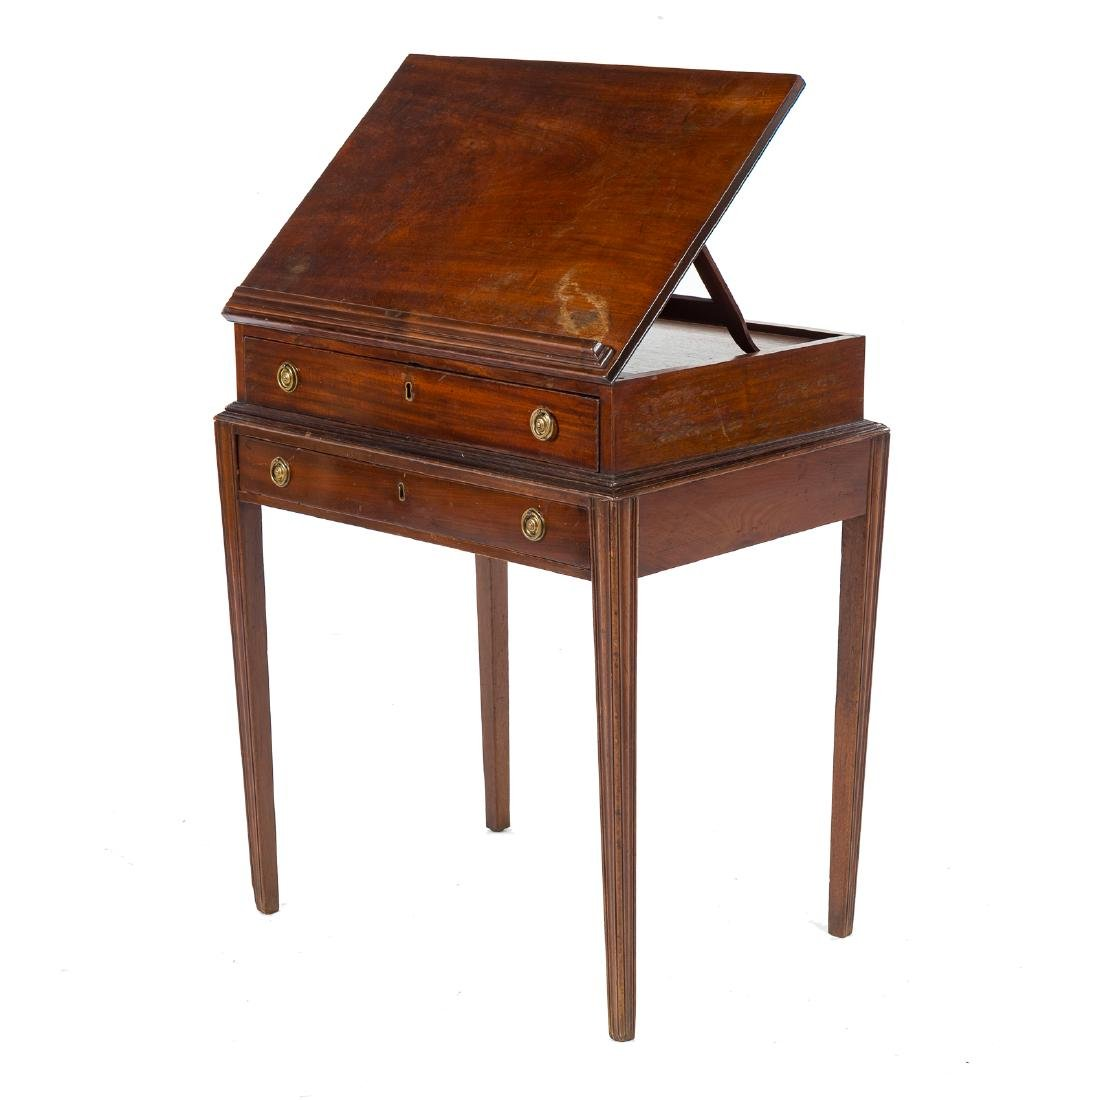 George III style mahogany architect's desk